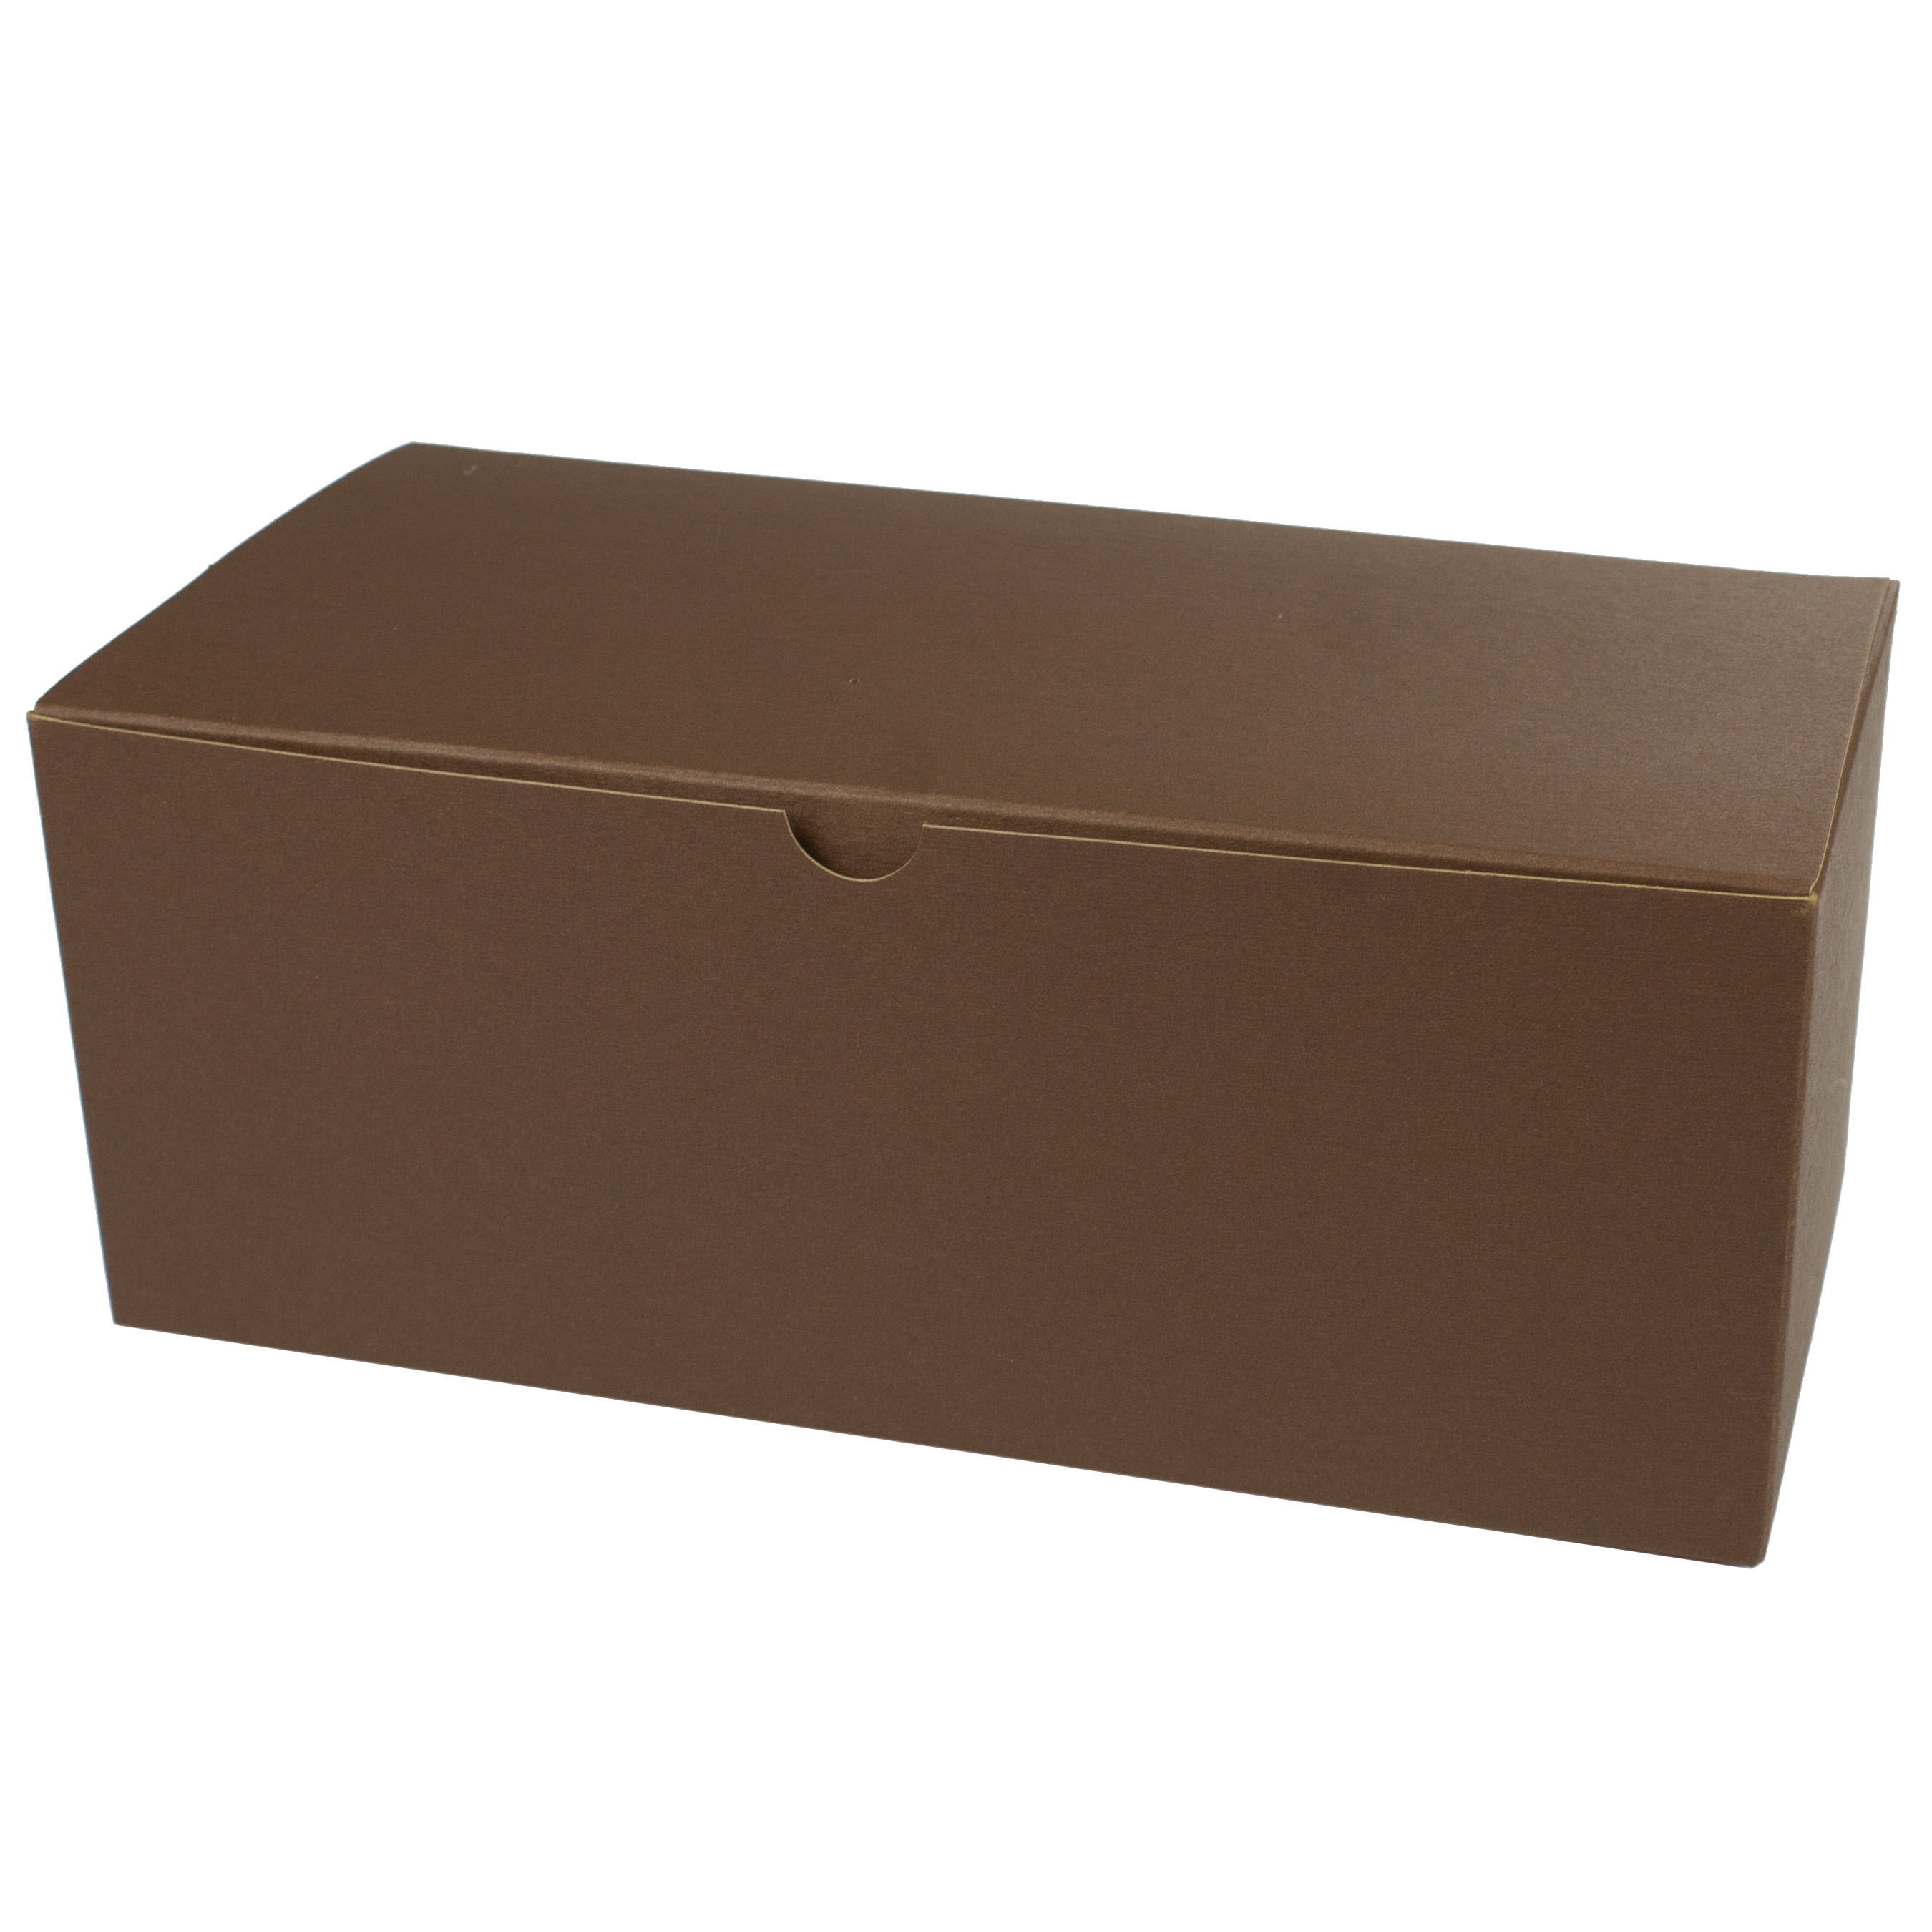 10 x 5 x 4 COCOA TINTED TUCK-TOP GIFT BOXES